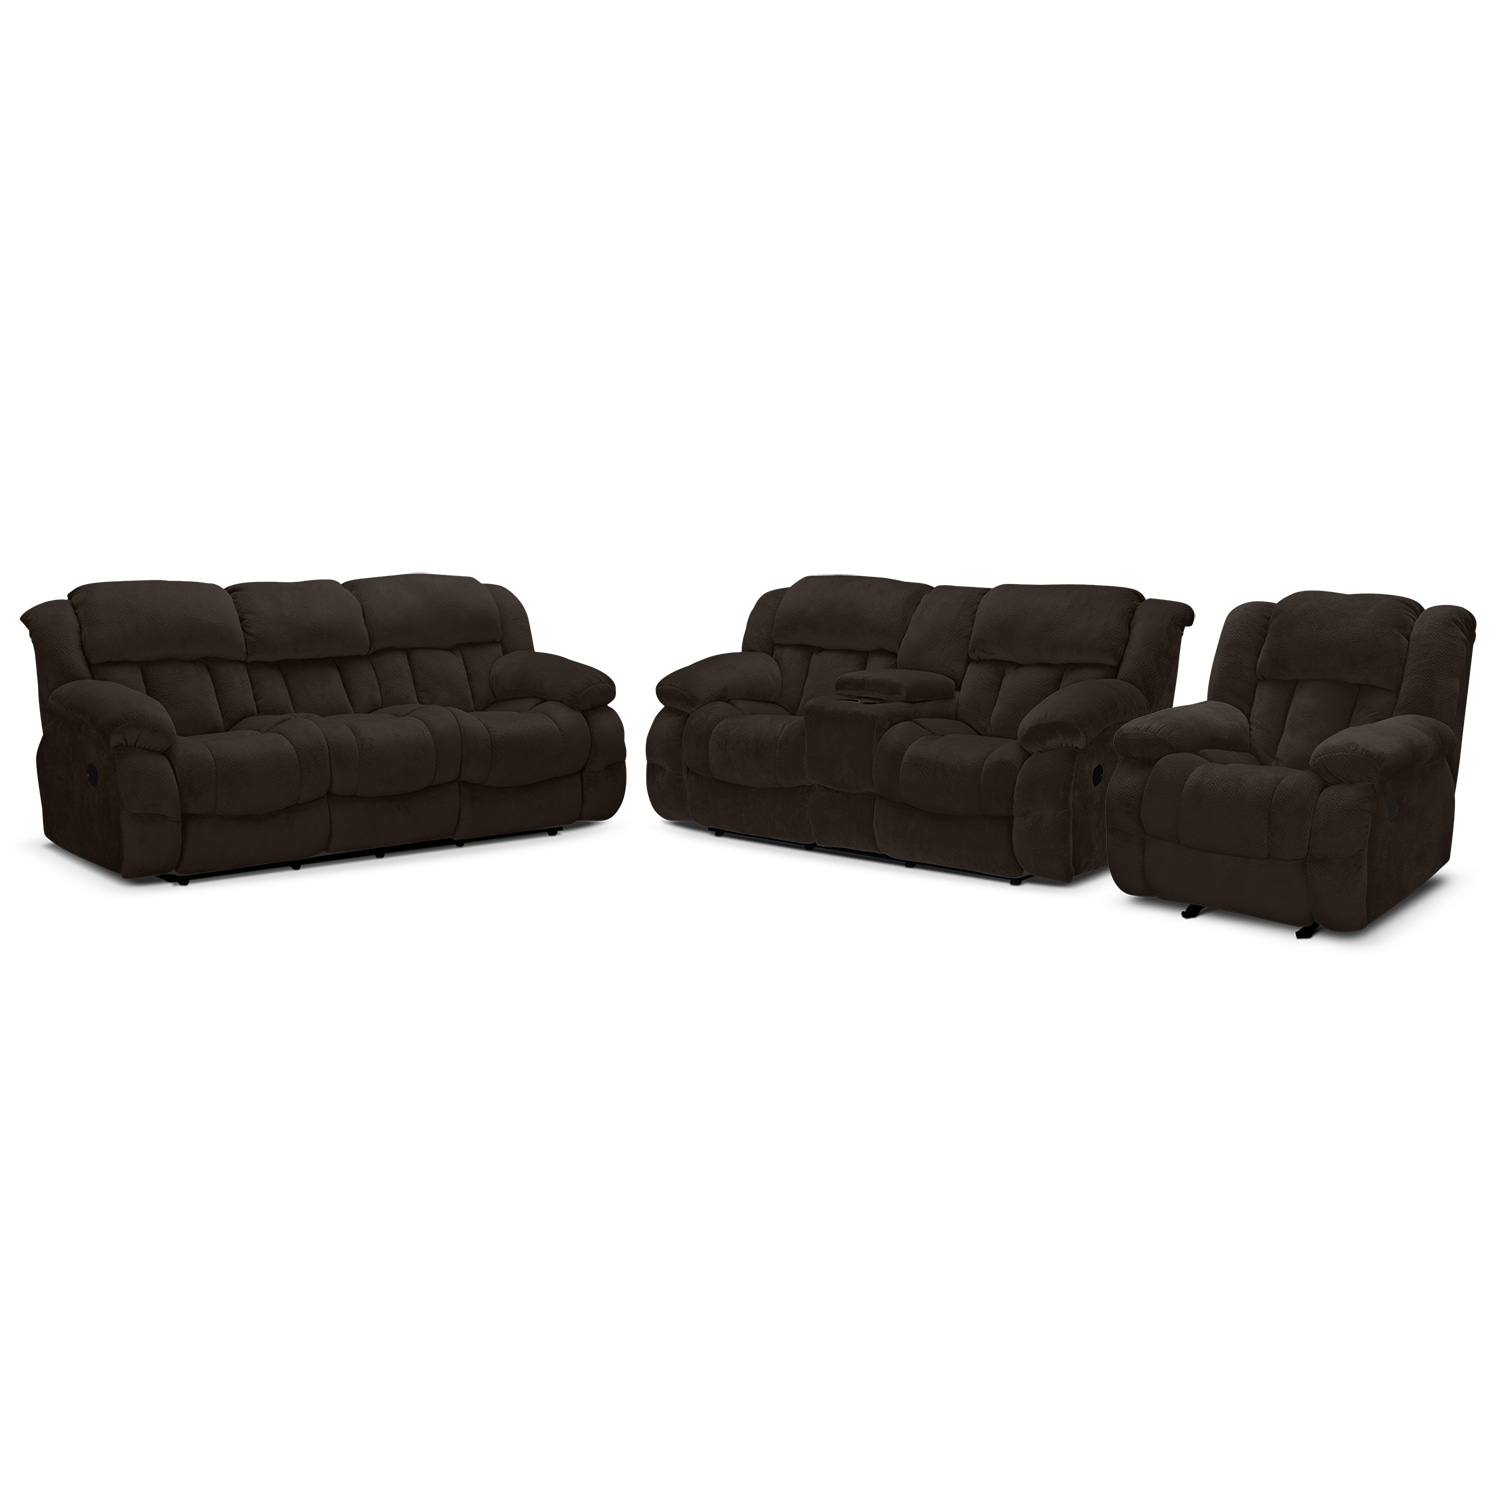 Living Room Furniture - Park City Dual Reclining Sofa, Loveseat and Glider Recliner Set - Chocolate